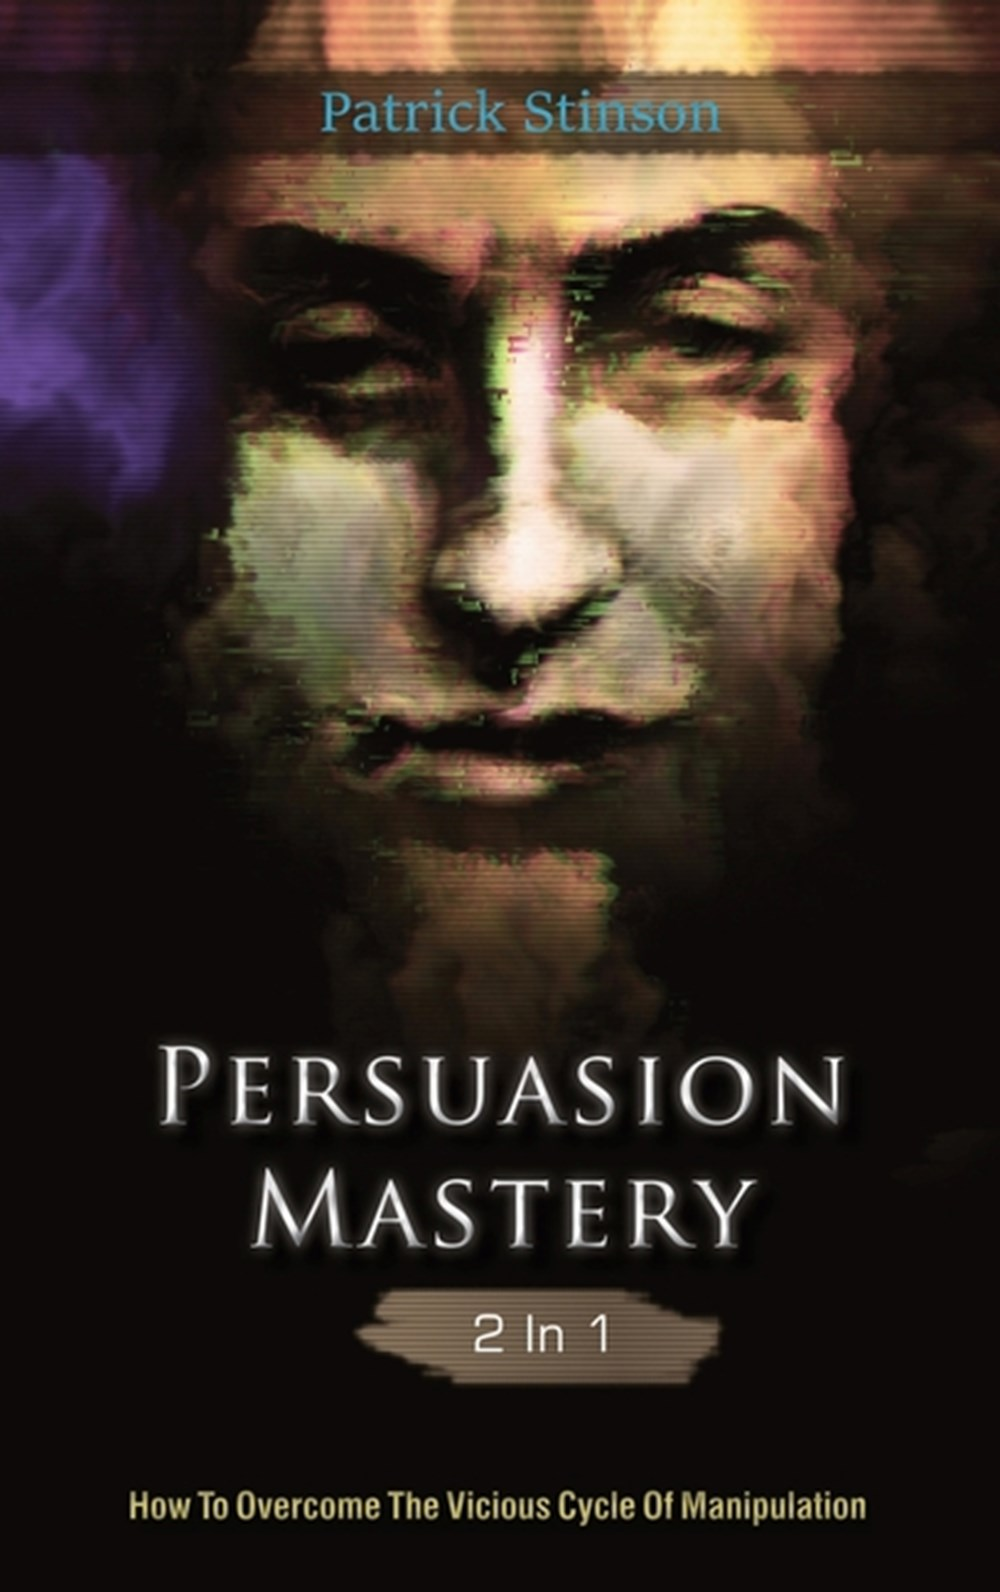 Persuasion Mastery 2 In 1 How To Overcome The Vicious Cycle Of Manipulation